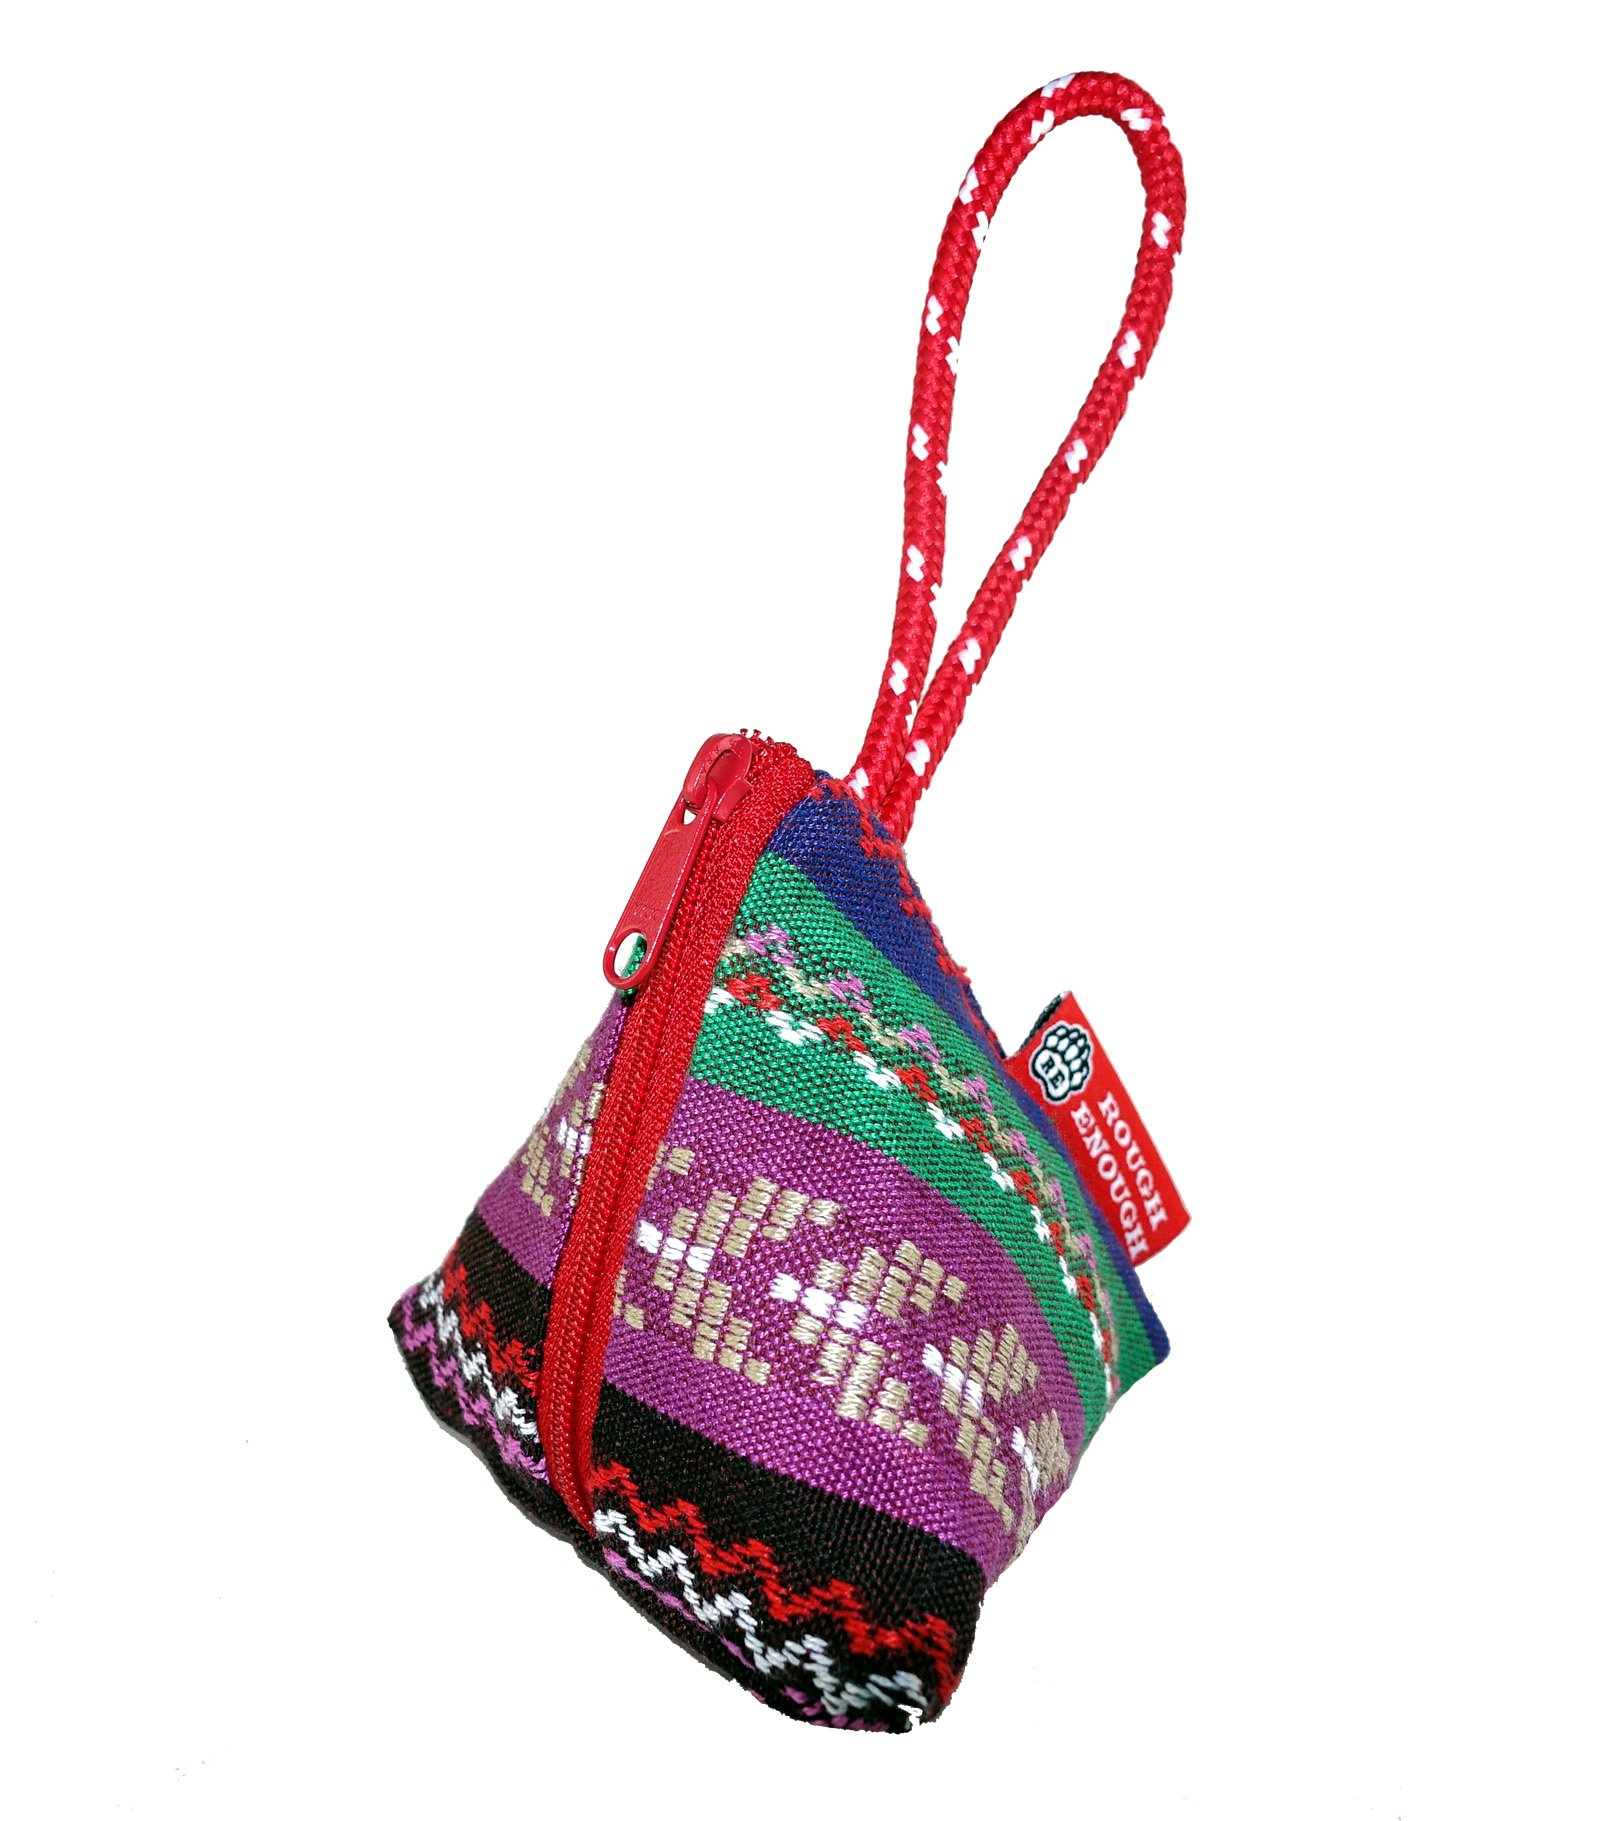 Rough Enough Cotton Folk Ethnic Boho Embroidery Vintage Portable Mini Triangle Wristlet Coin Pouch Purse Wallet Bag Small Accessories Jewelry Storage Organizer for Kids Girls Women Home Outdoor